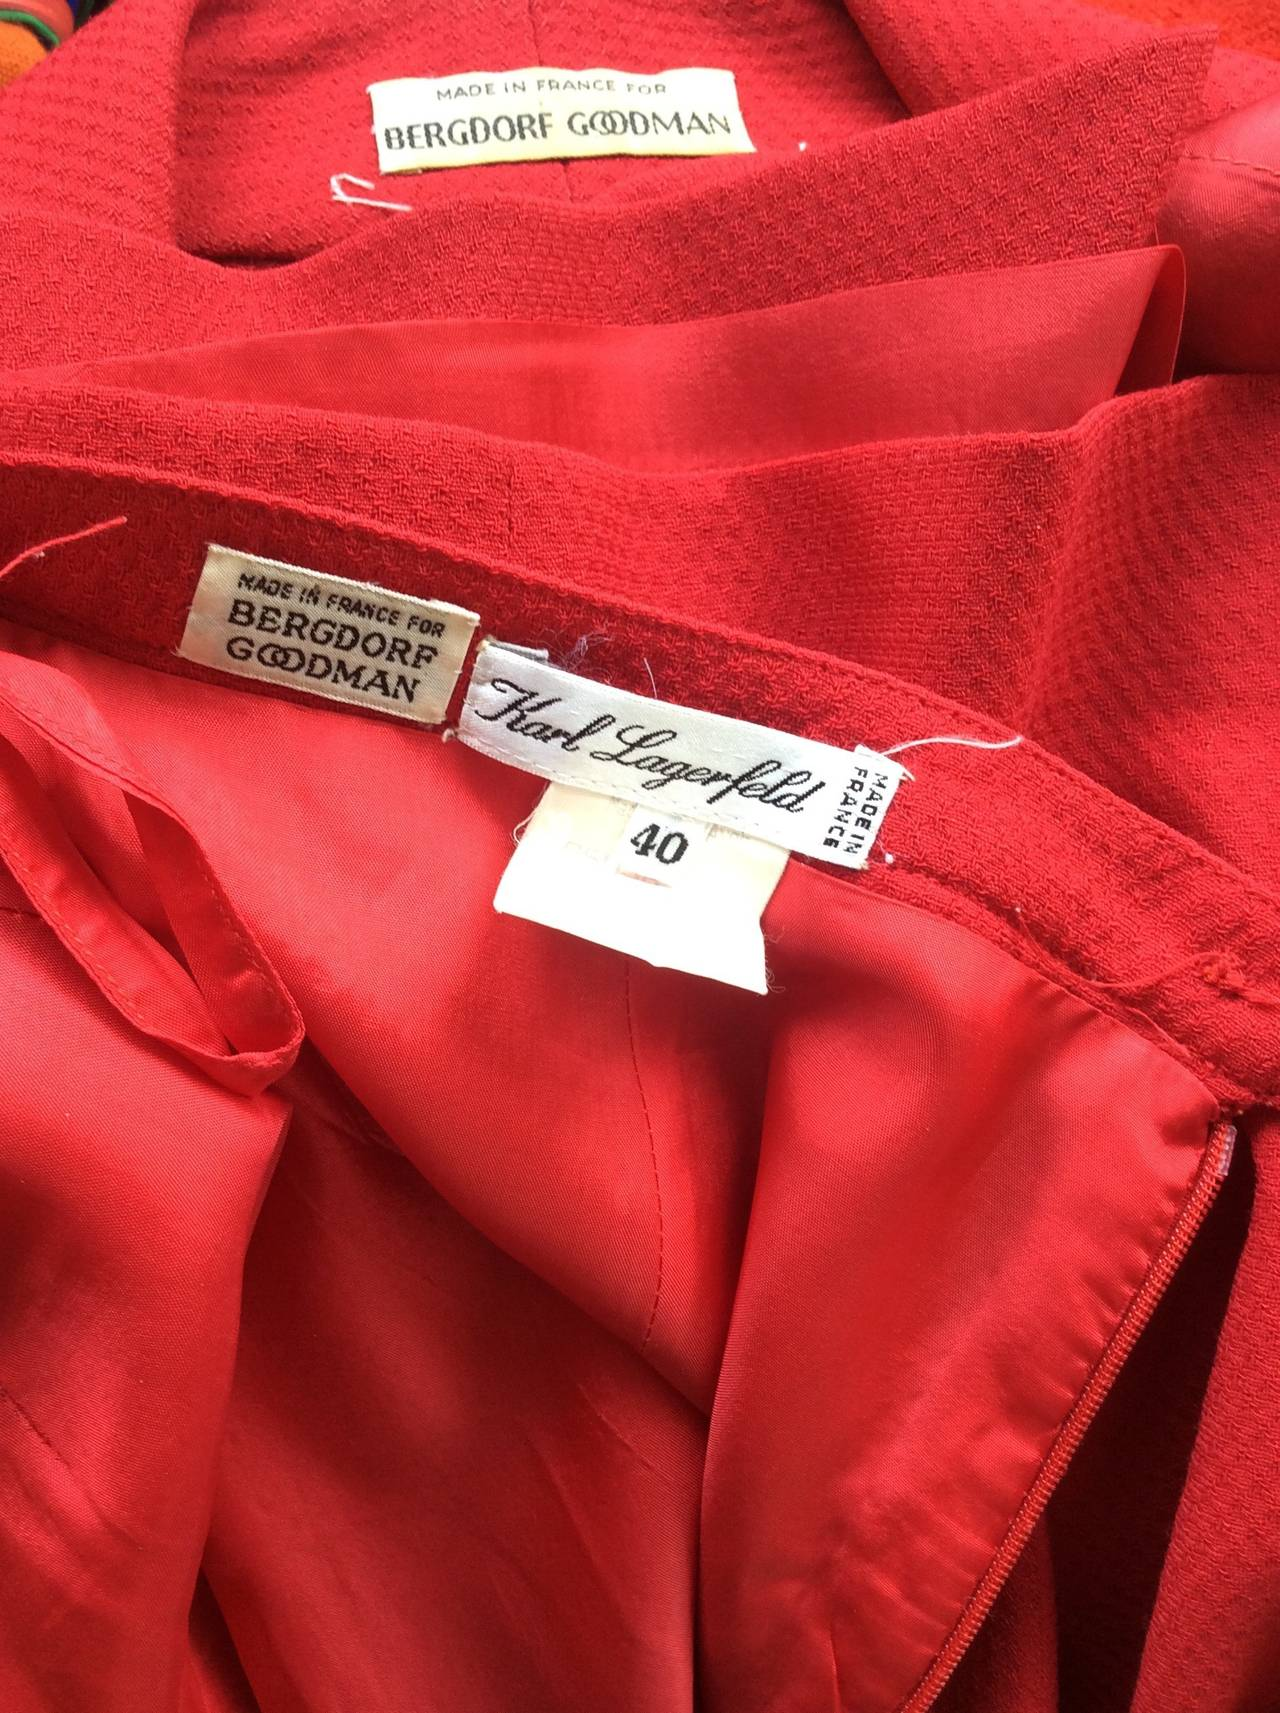 Gorgeous 1990s Vintage Karl Lagerfeld Bright Red Double Breasted Skirt Suit For Sale 2